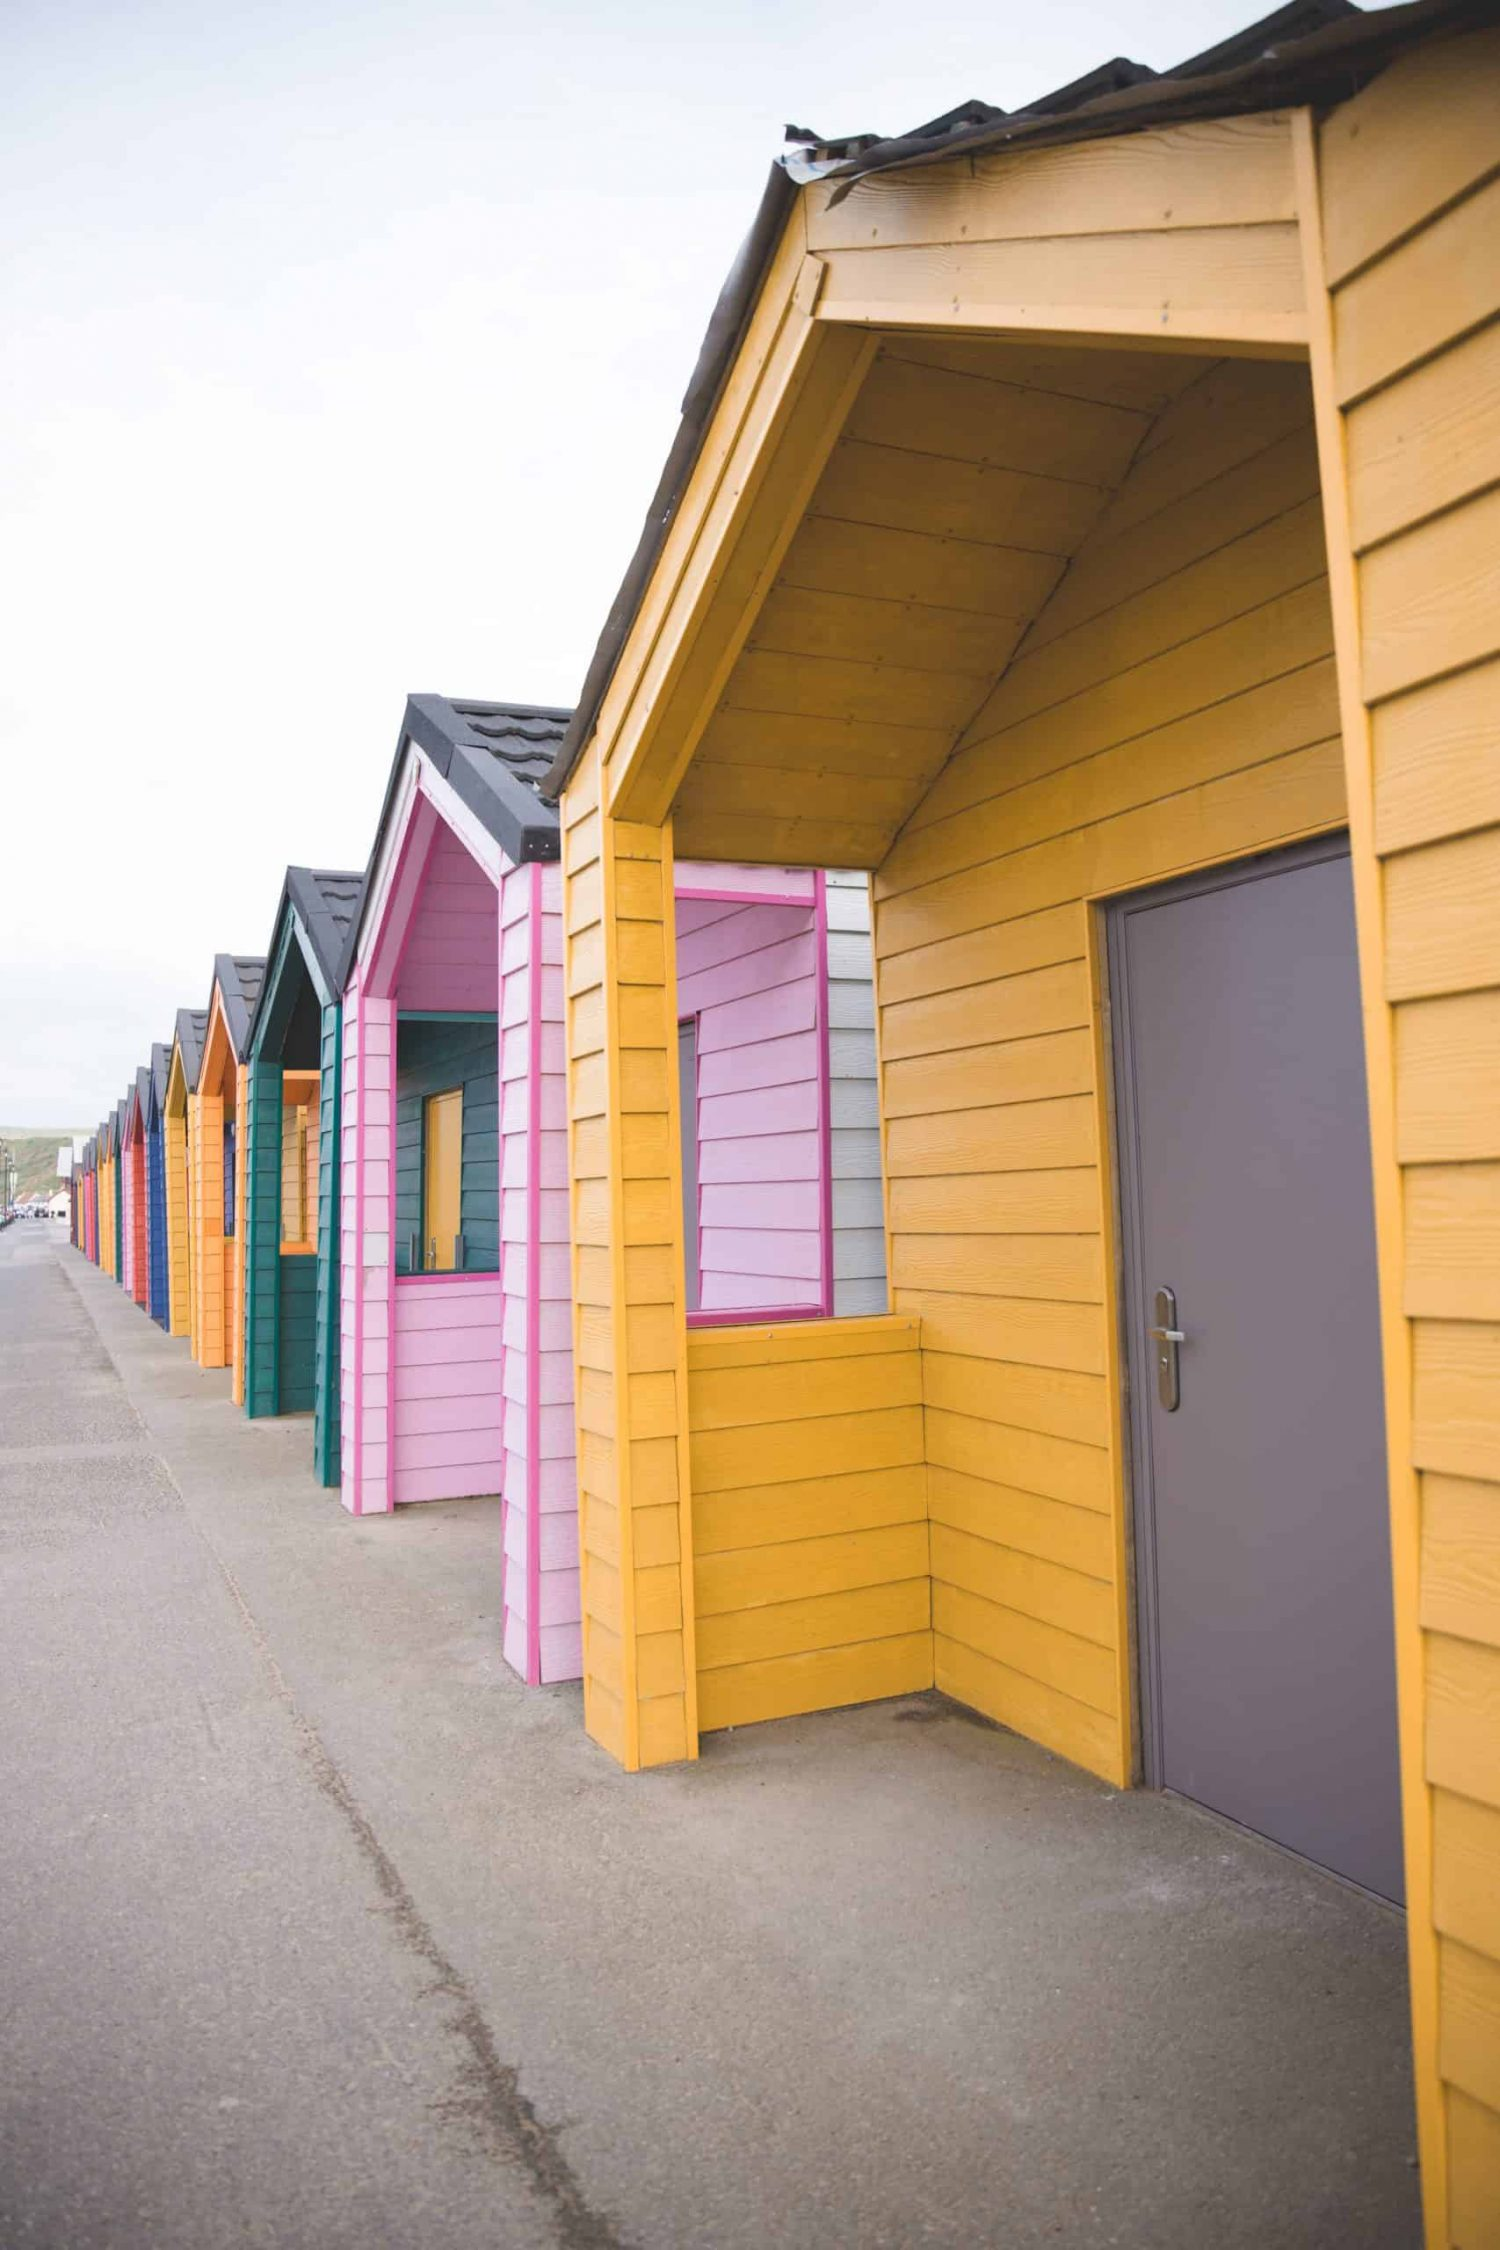 Colorful bright beach huts in Saltburn-by-the-Sea in England. The Yorkshire coast is one of my favorite places from 2019, and a great destination to travel to in 2020!